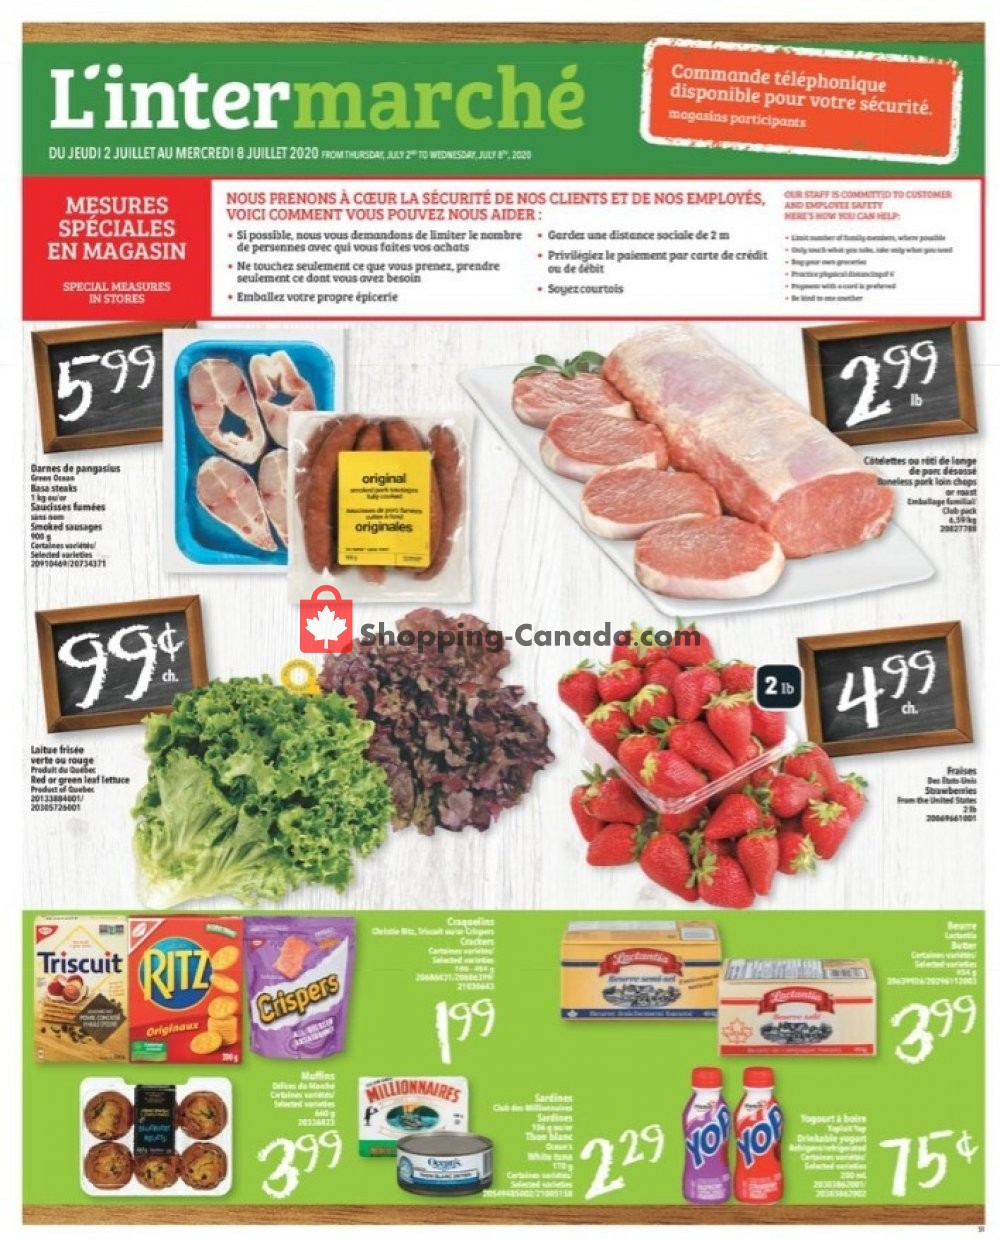 Flyer L'inter Marché Canada - from Thursday July 2, 2020 to Wednesday July 8, 2020